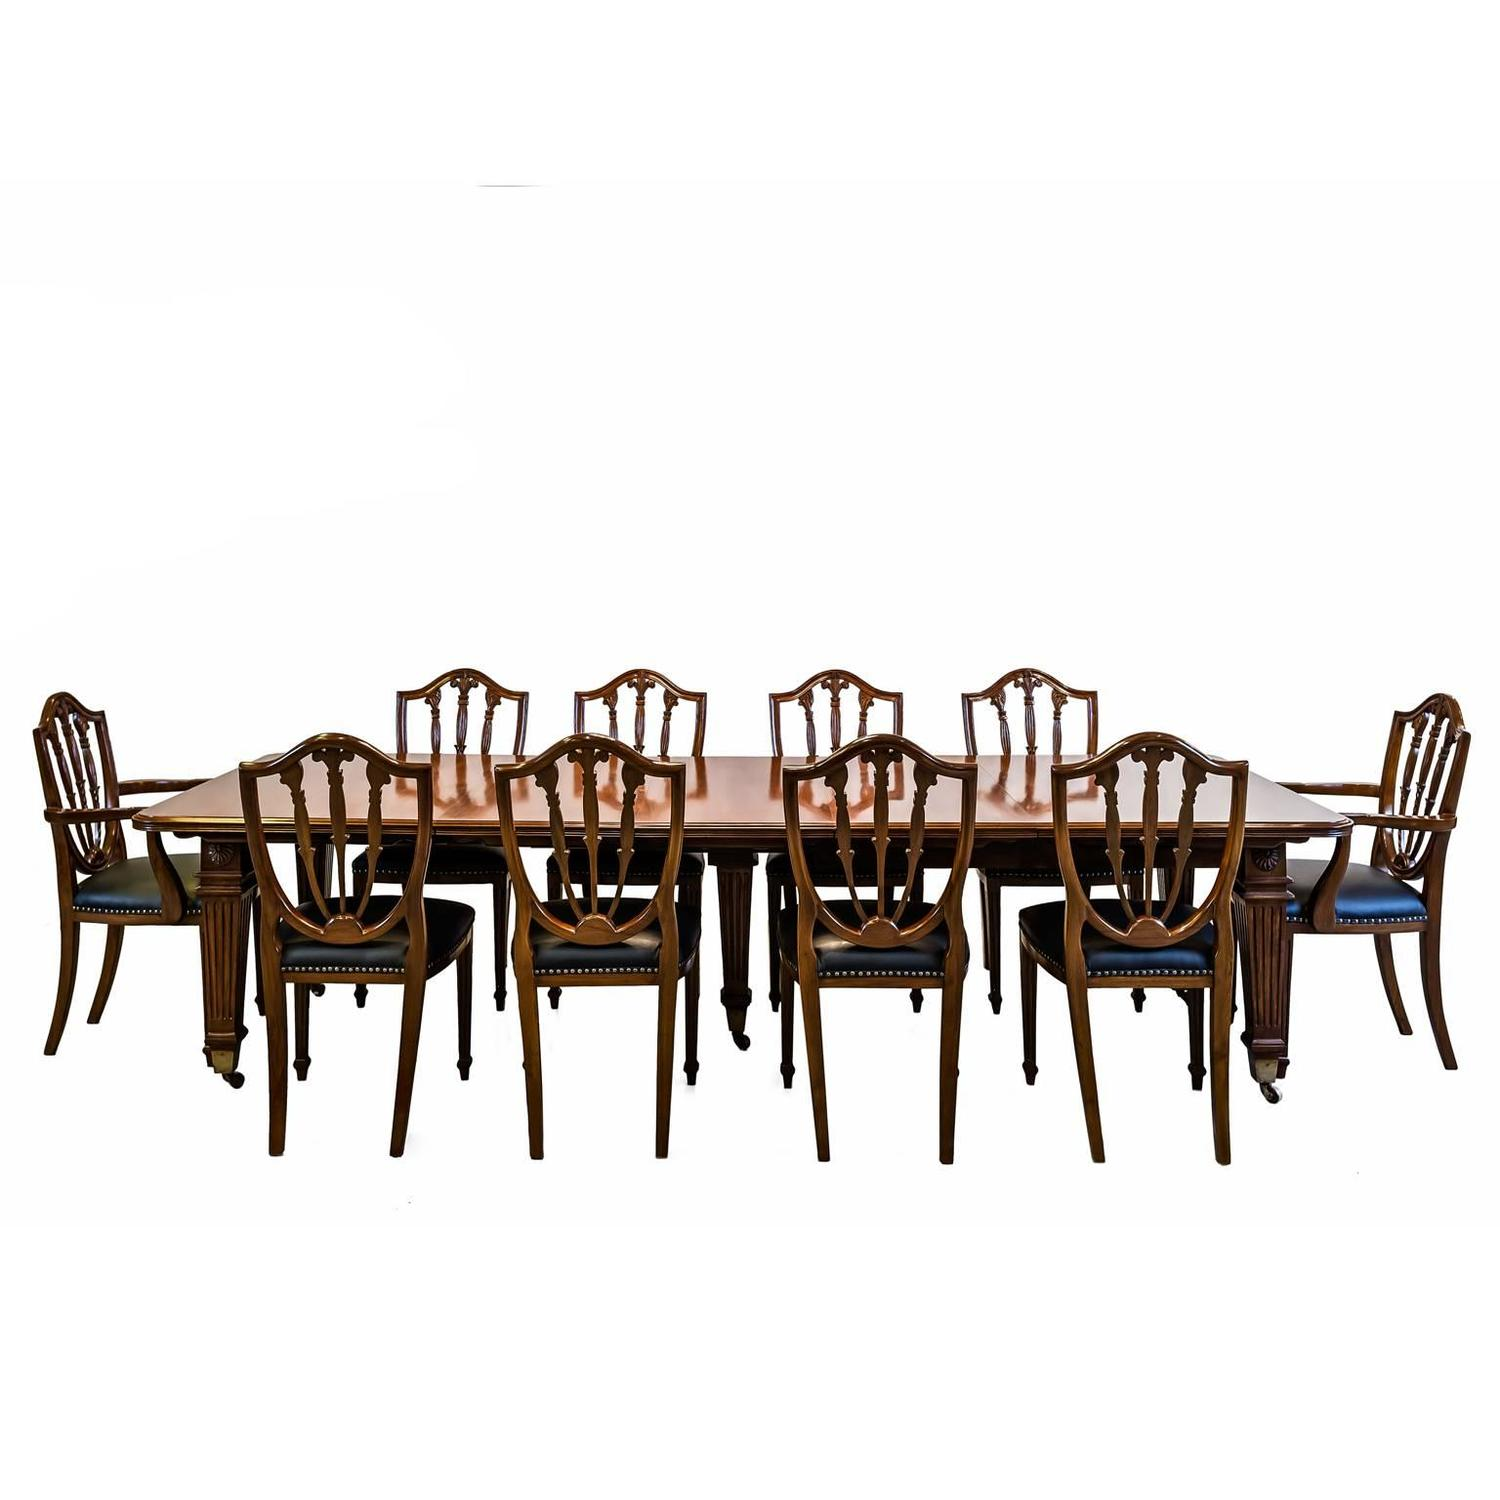 colonial dining table and chairs 28 images colonial  : AntqiueBritishcolonialteakwoodextendingdiningtablewithoriginal10chairslThePastPerfectCollectionlSingaporel294D1z from americanhomesforsale.us size 1500 x 1500 jpeg 108kB